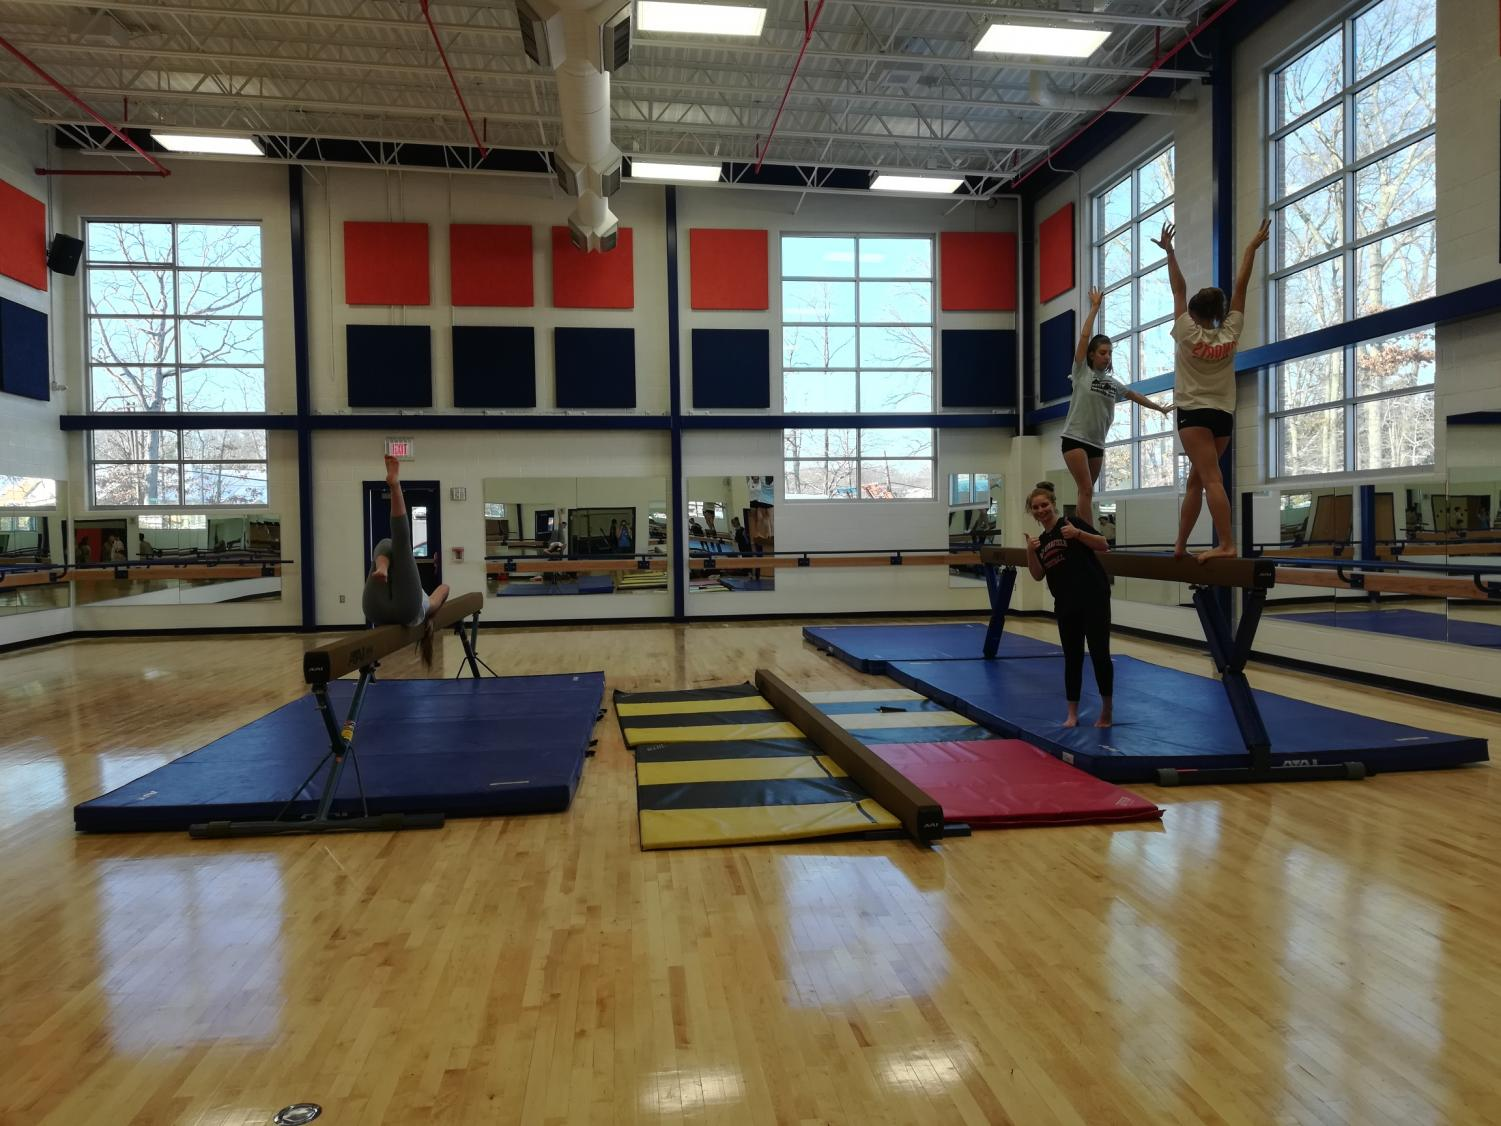 WS gymnasts use the new room to practice their beam routine after school. The new studio allows the gymnastics team to schedule their practices more conveniently and provides a better floor surface than the cafeteria for dance.